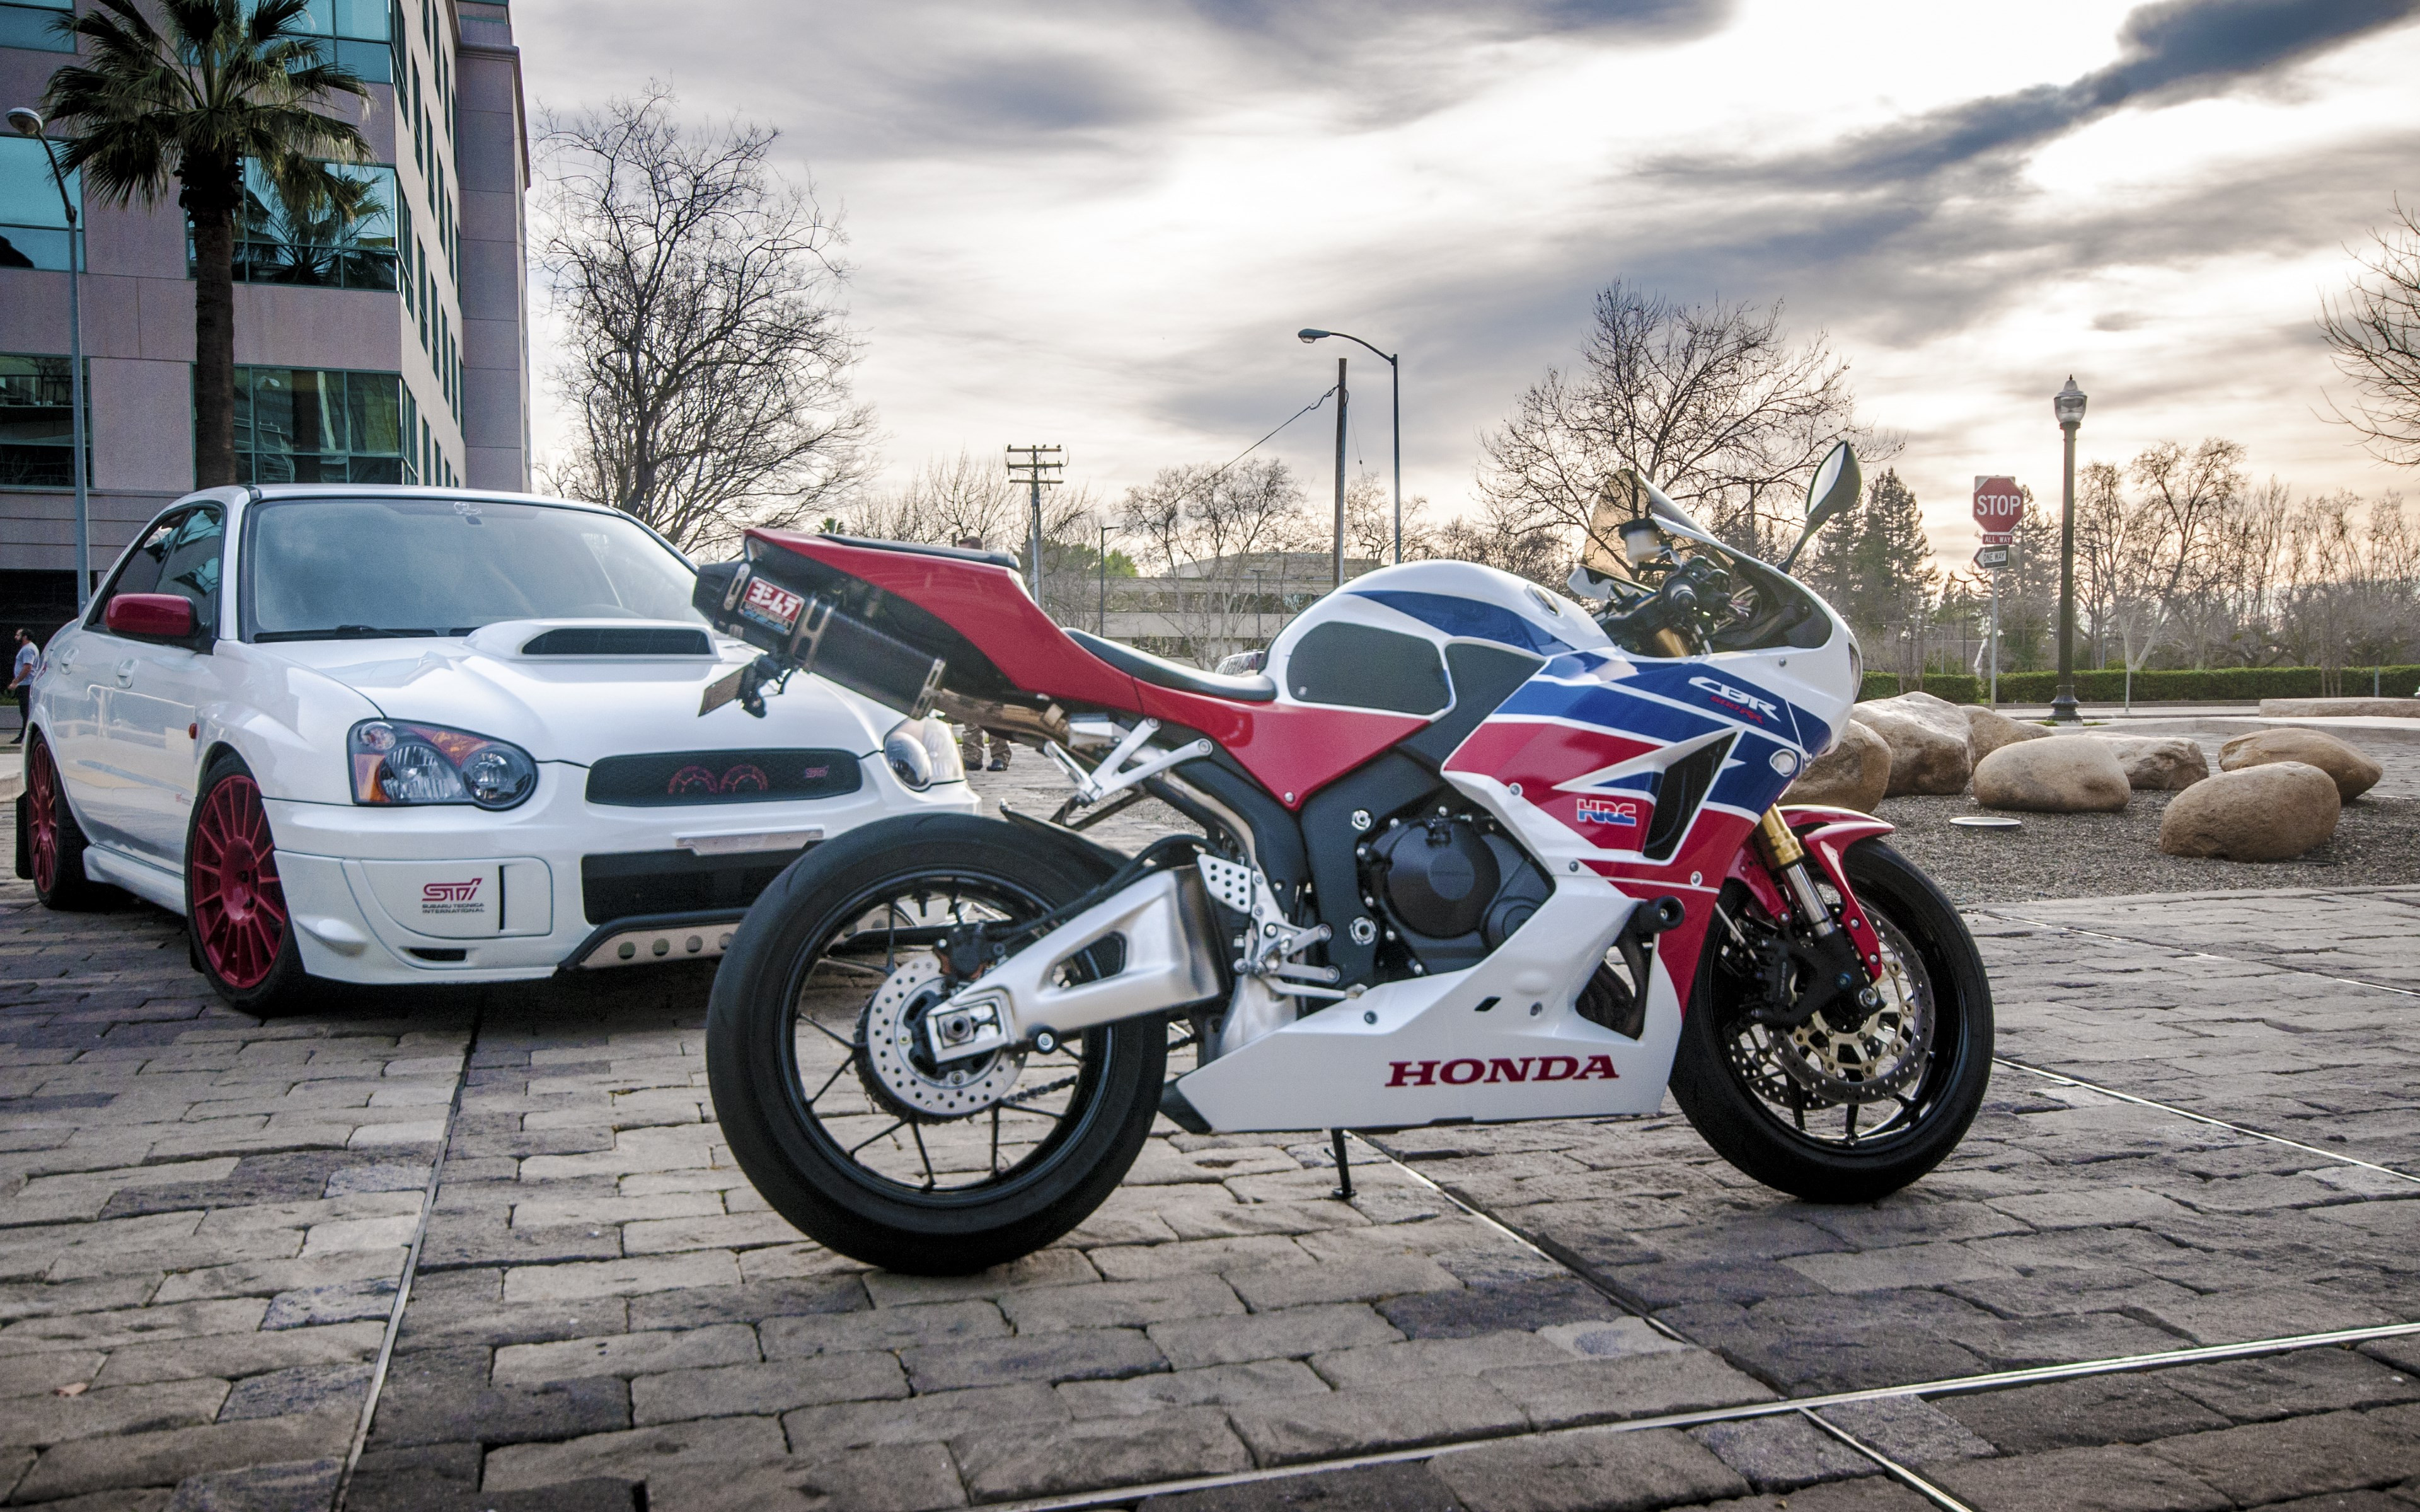 Honda CBR and Subaru WRX wallpaper 3840x2400